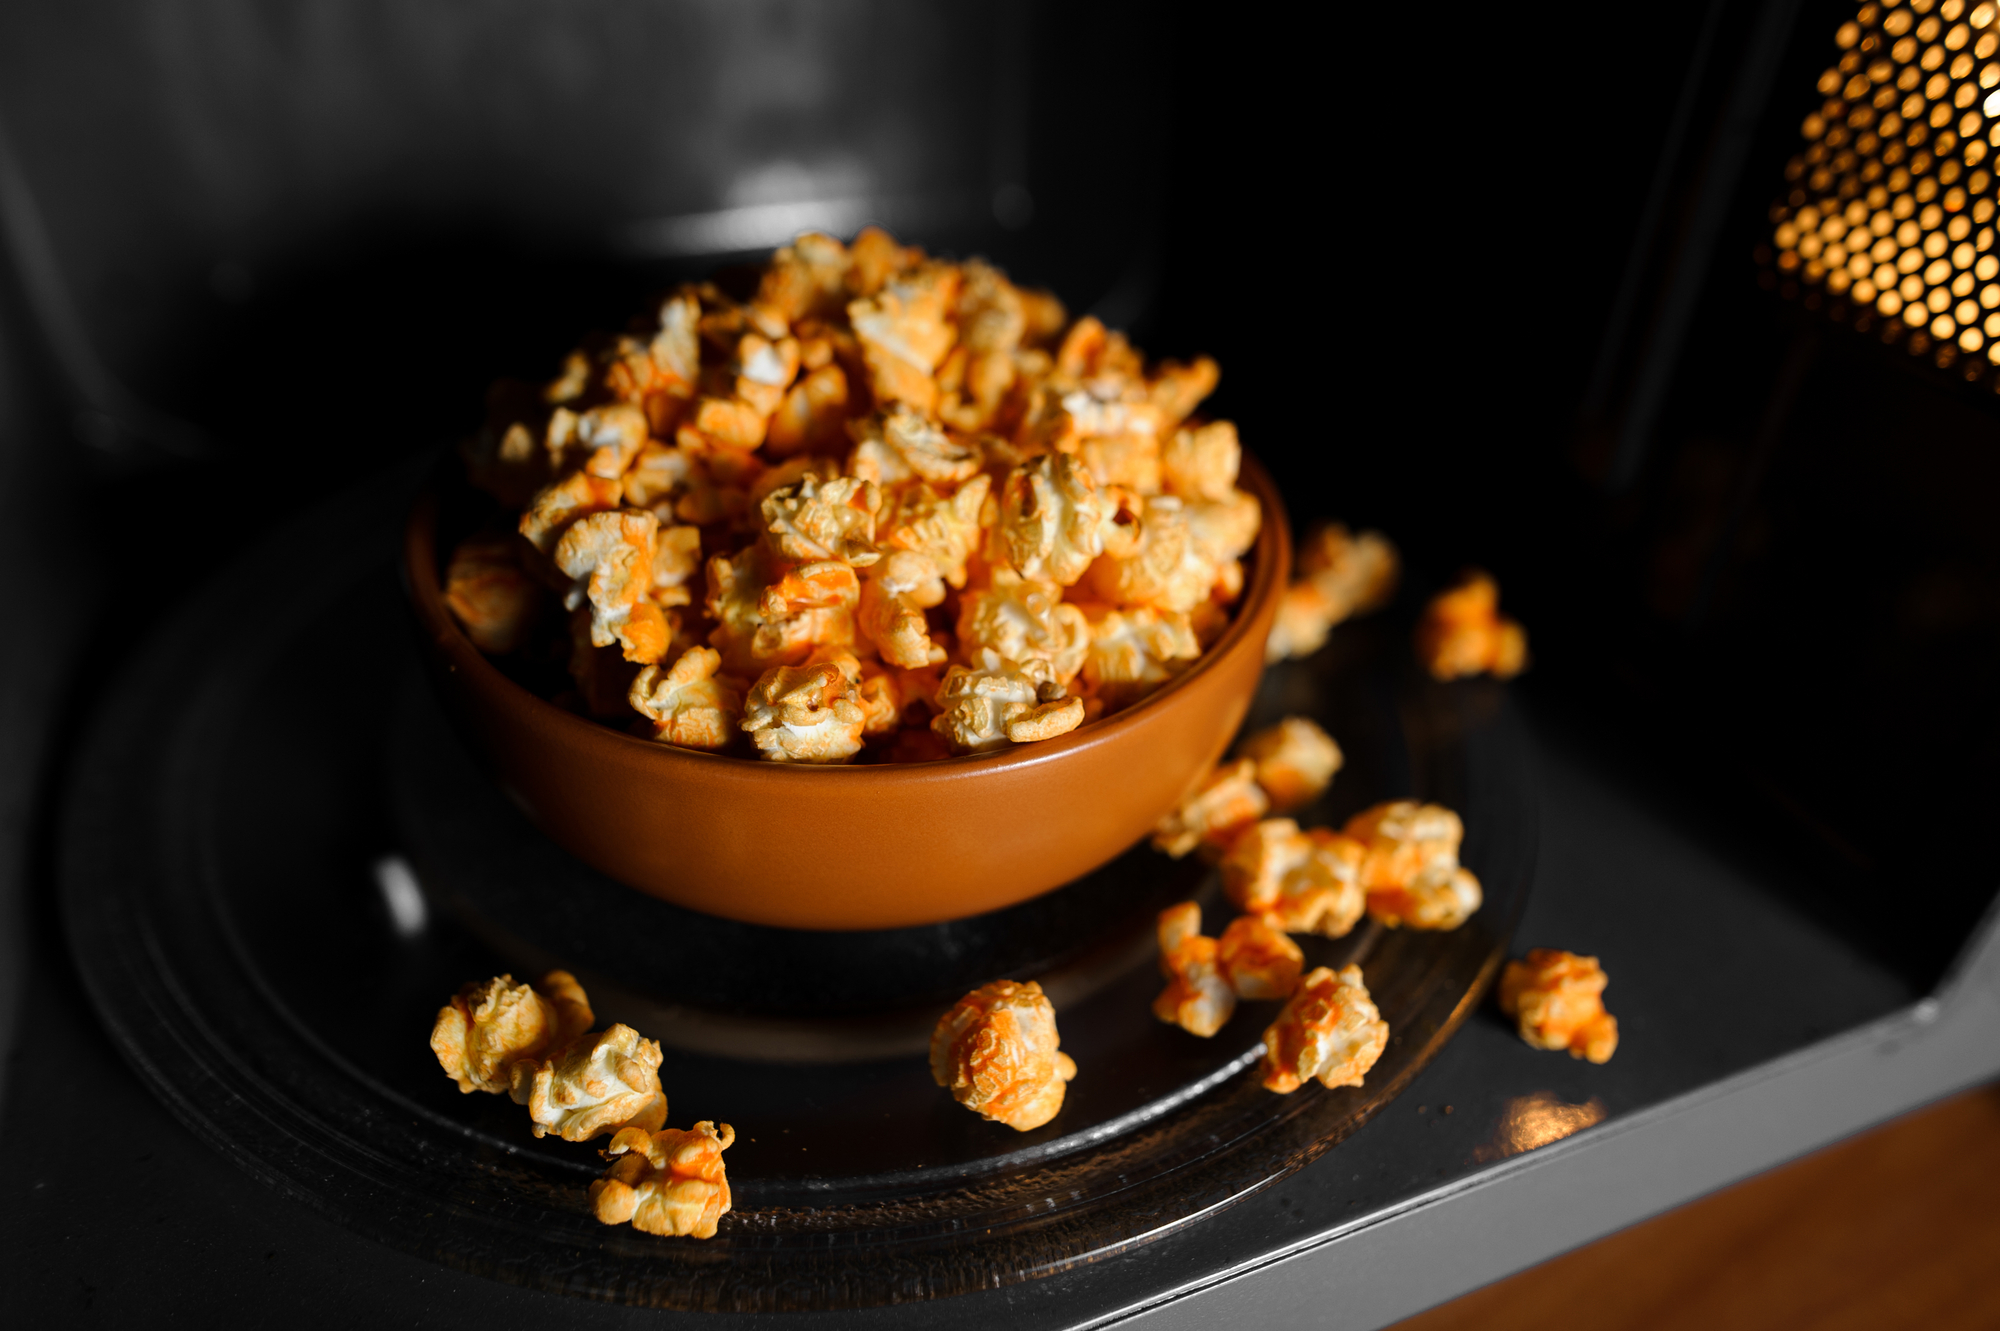 roasted popcorn in a clay brown dish stand in the microwave